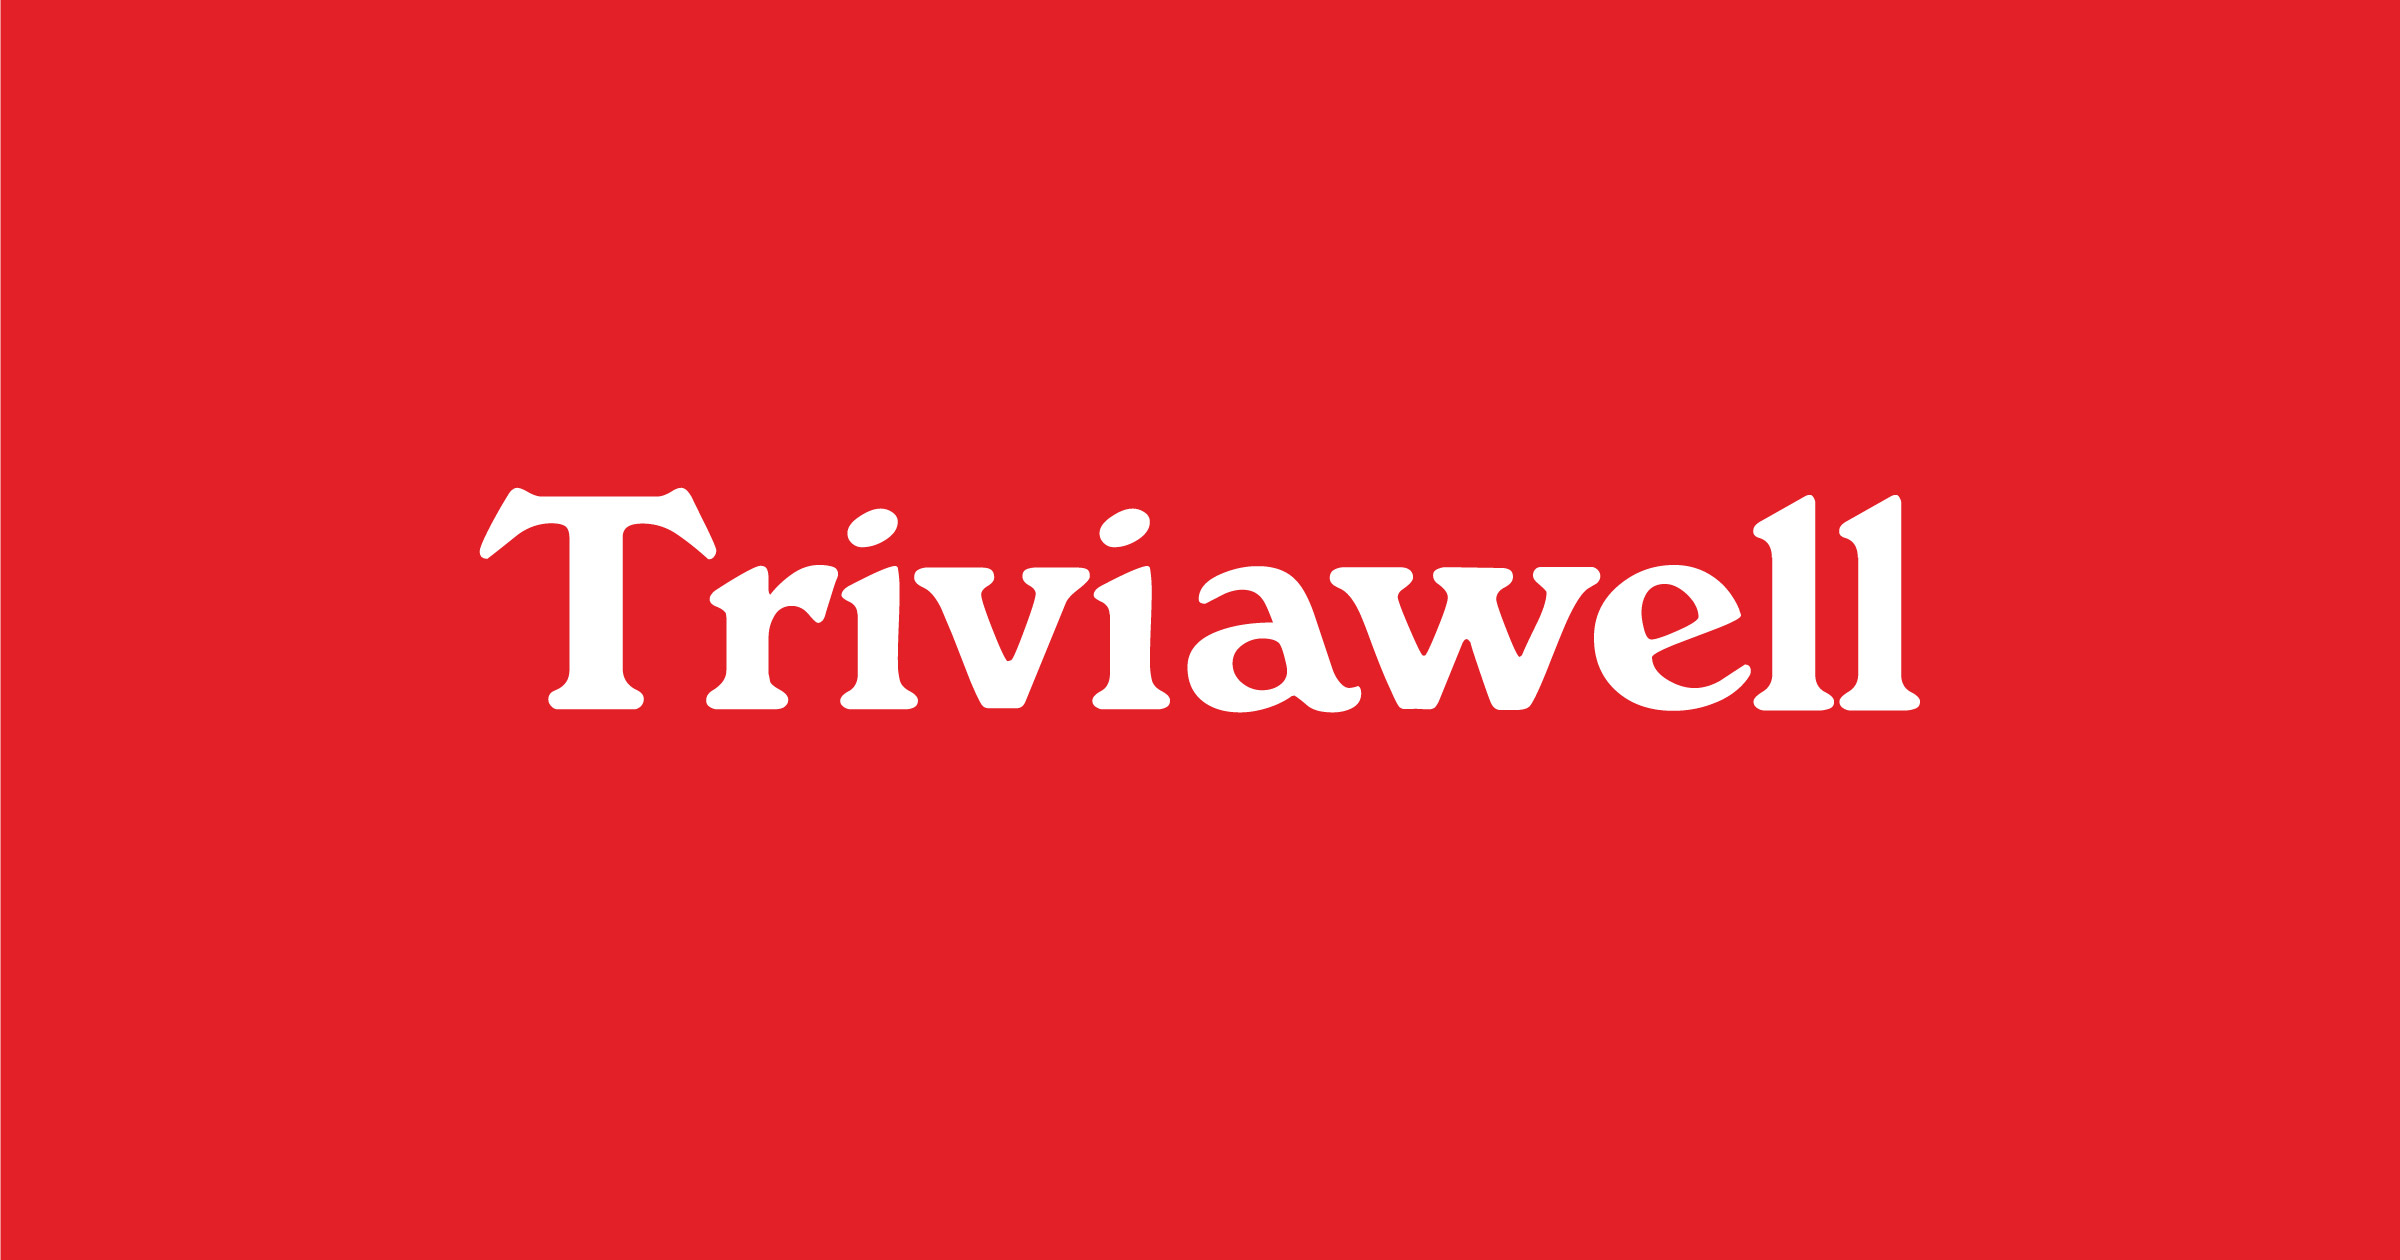 2346+ General Knowledge Trivia Questions and Answers ...